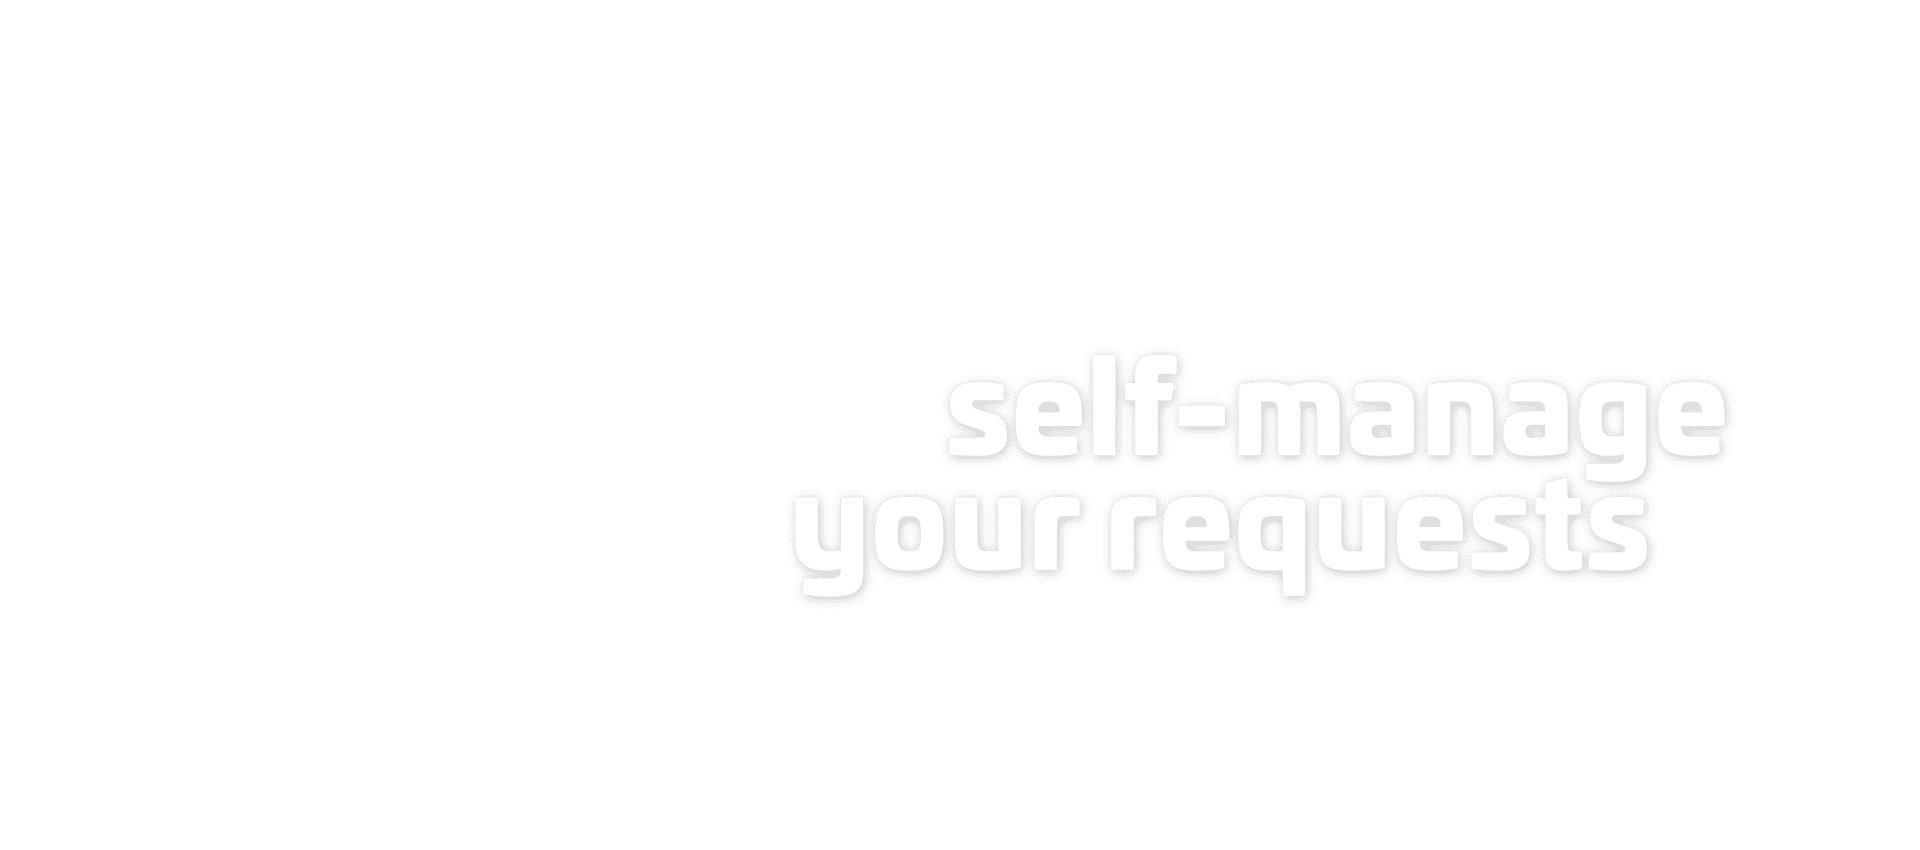 self-manage your requests